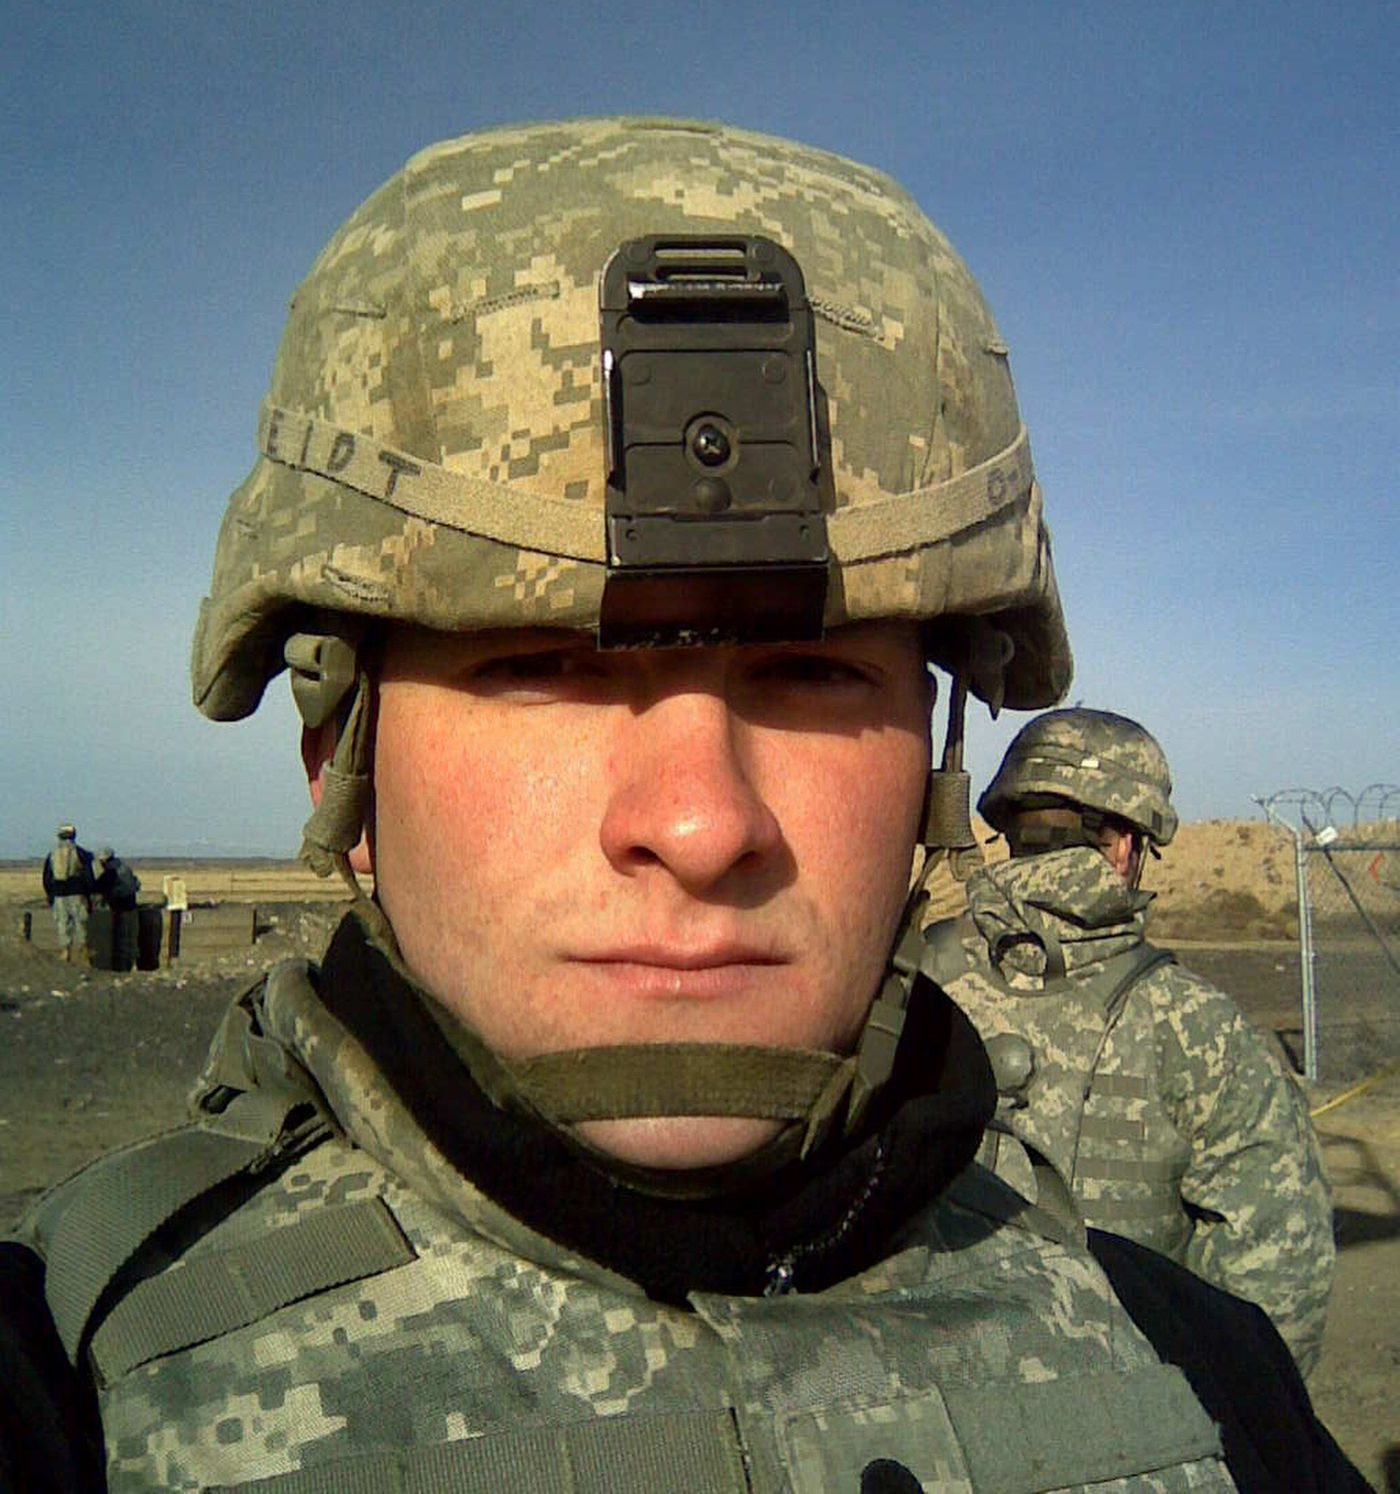 Benjamin Tveidt, 29, lives in Boise and serves in the Idaho Army National Guard. He has twice deployed to Iraq. In 1986 he was found as a newborn baby left in a box in Muldoon. He would now like to find his biological parents.